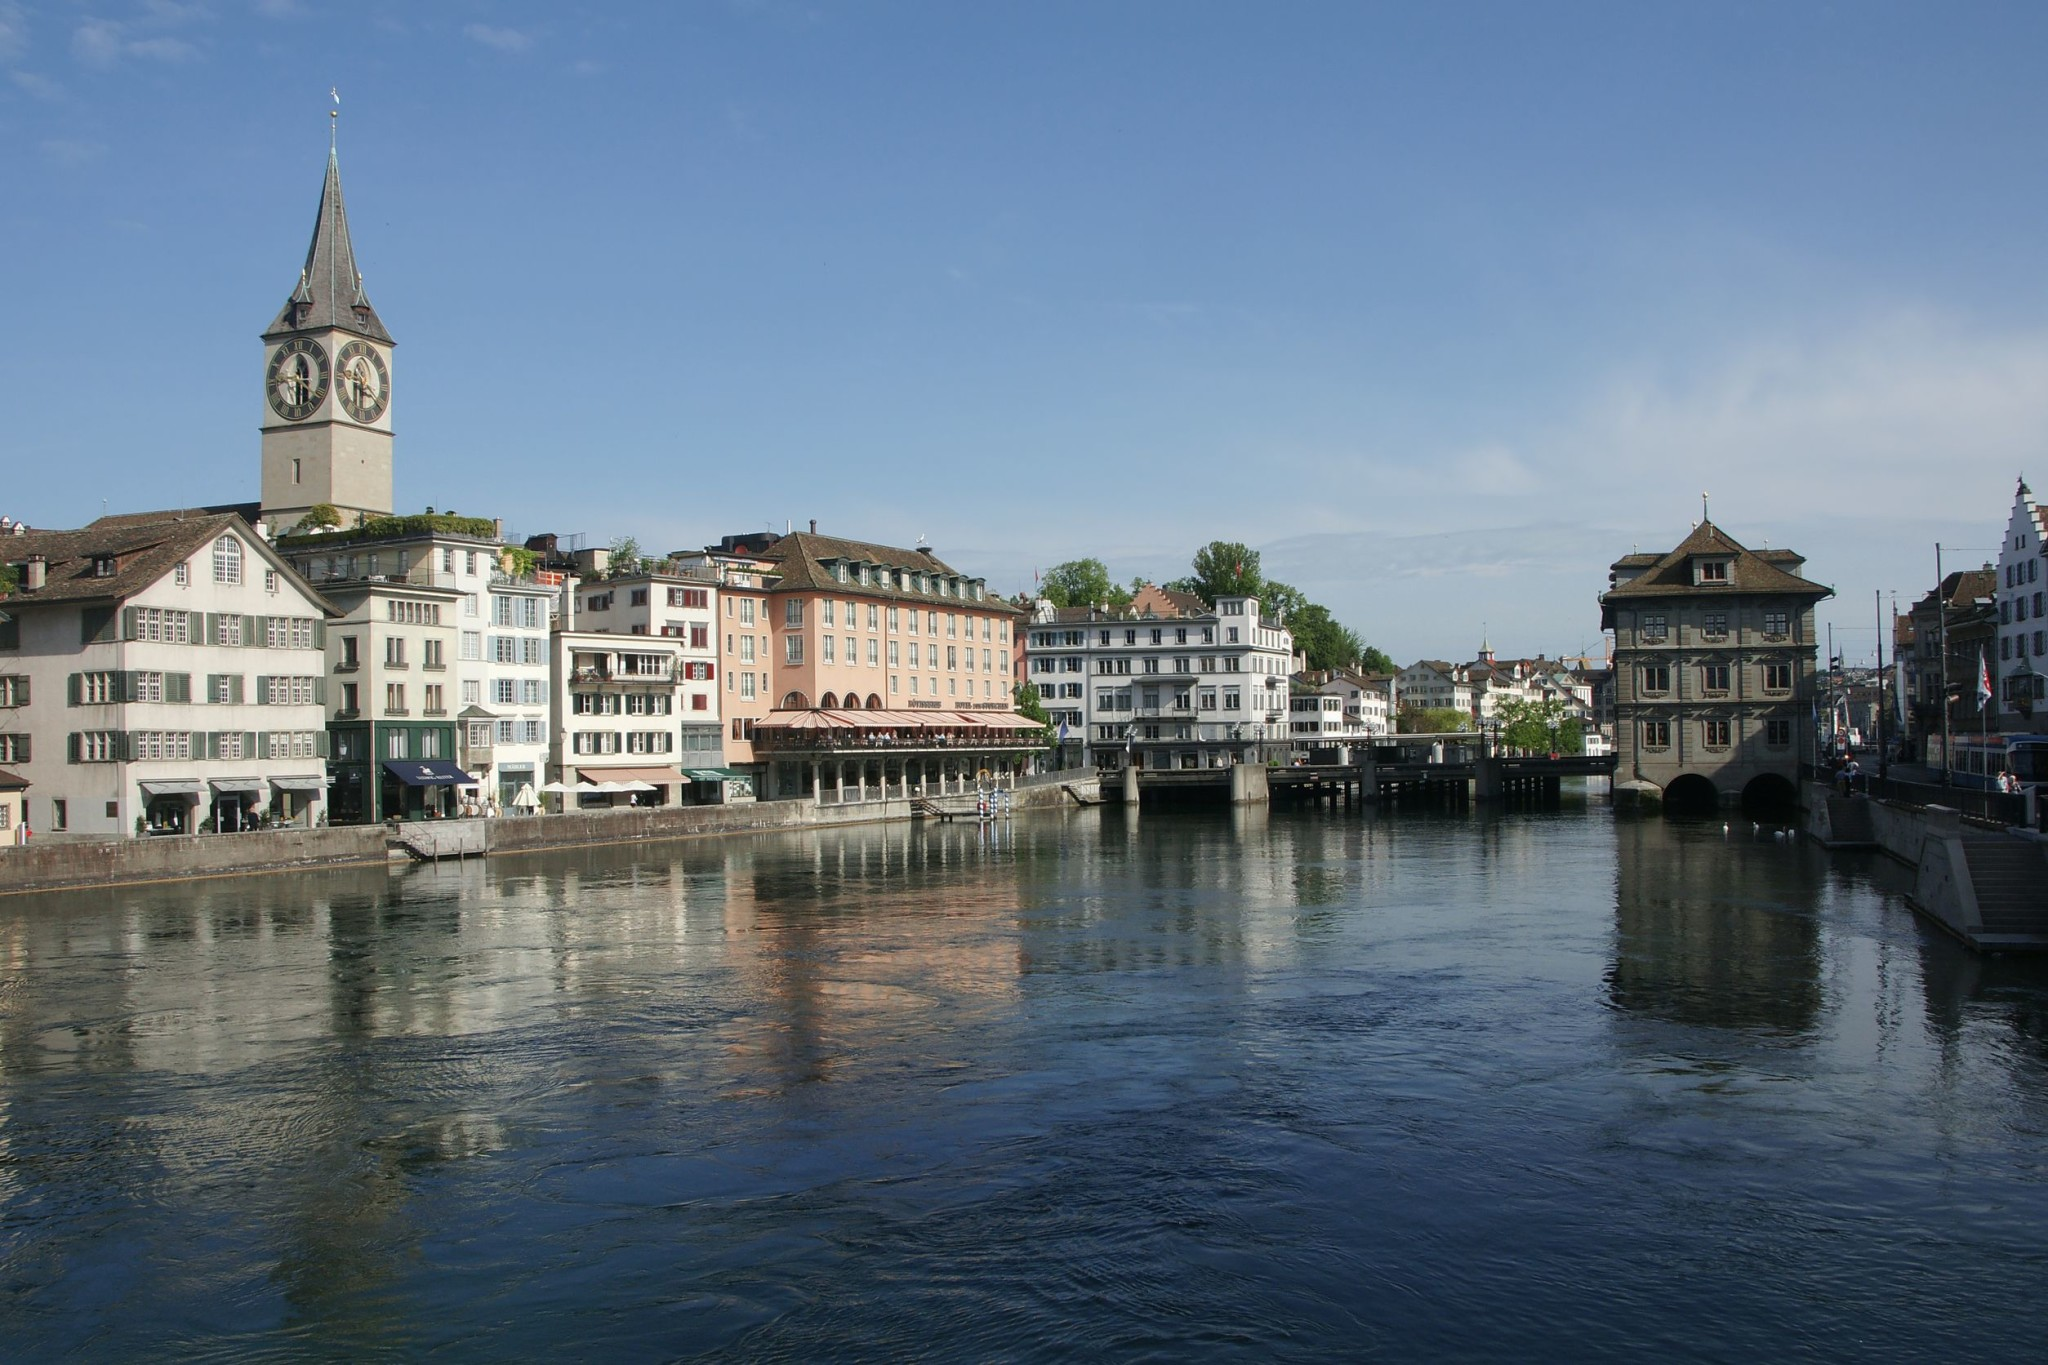 Limmat River in Zurich, Switzerland